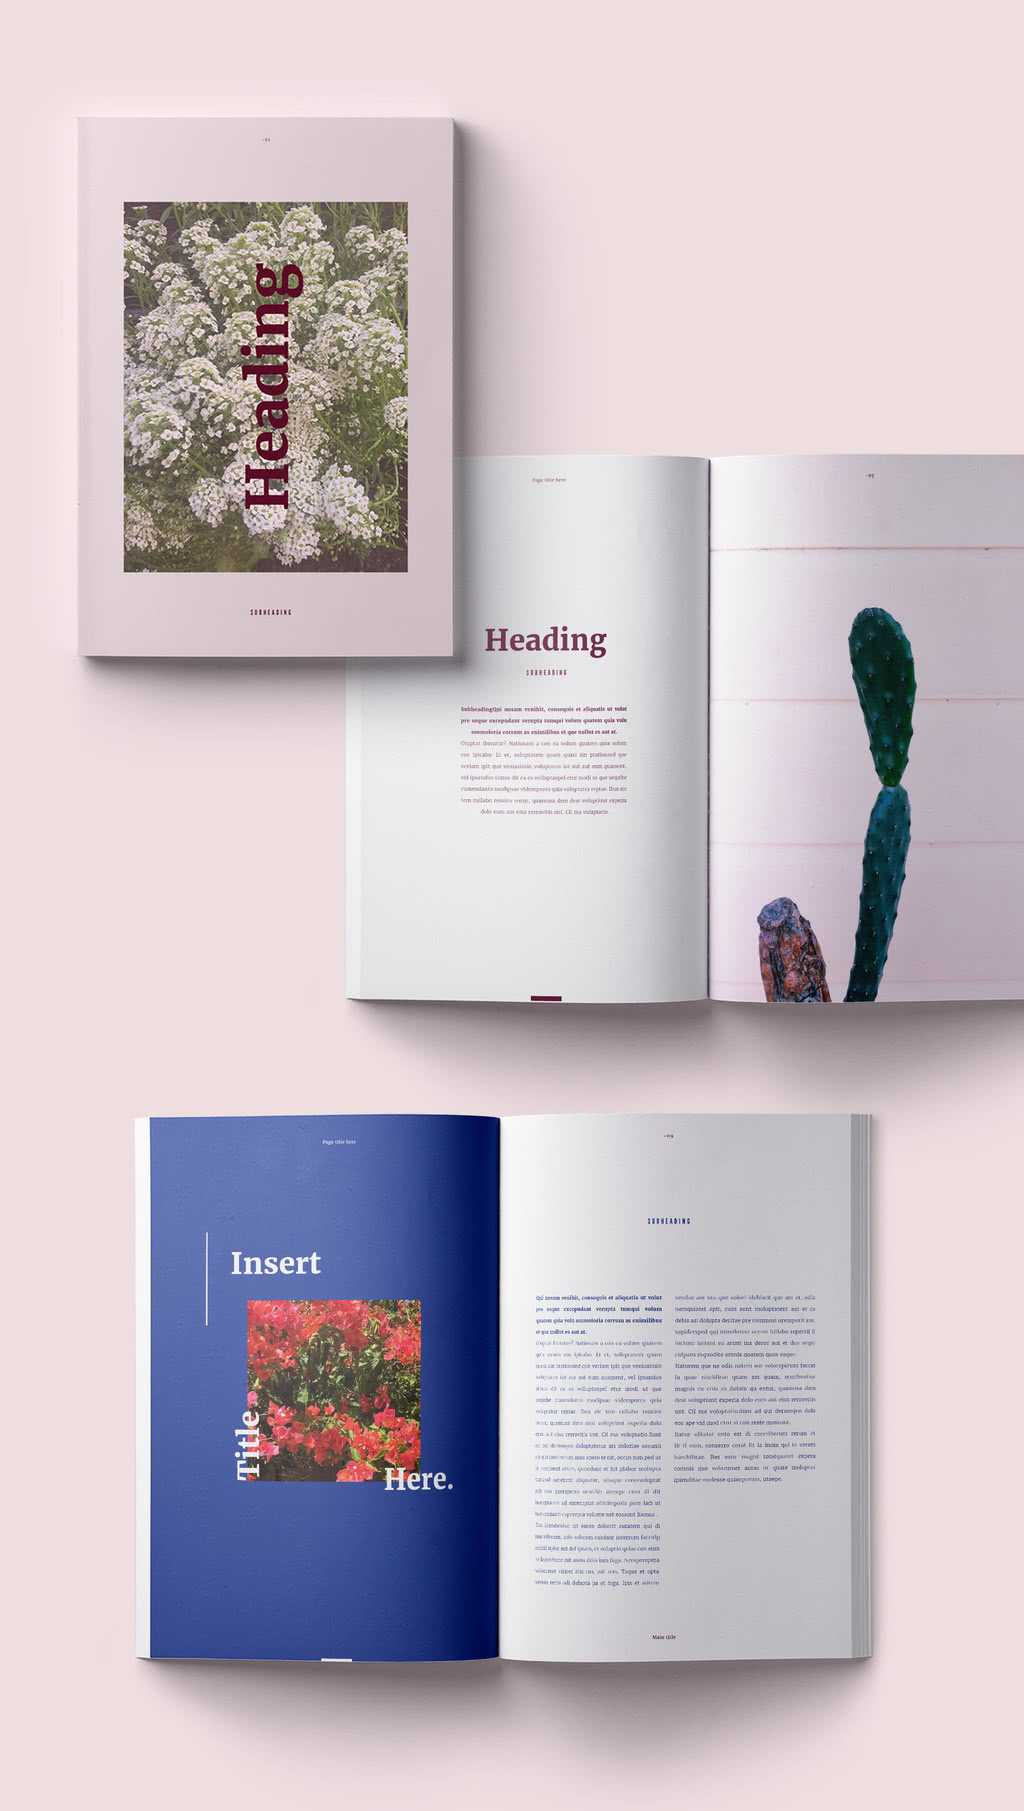 75 Fresh Indesign Templates And Where To Find More throughout Brochure Template Indesign Free Download